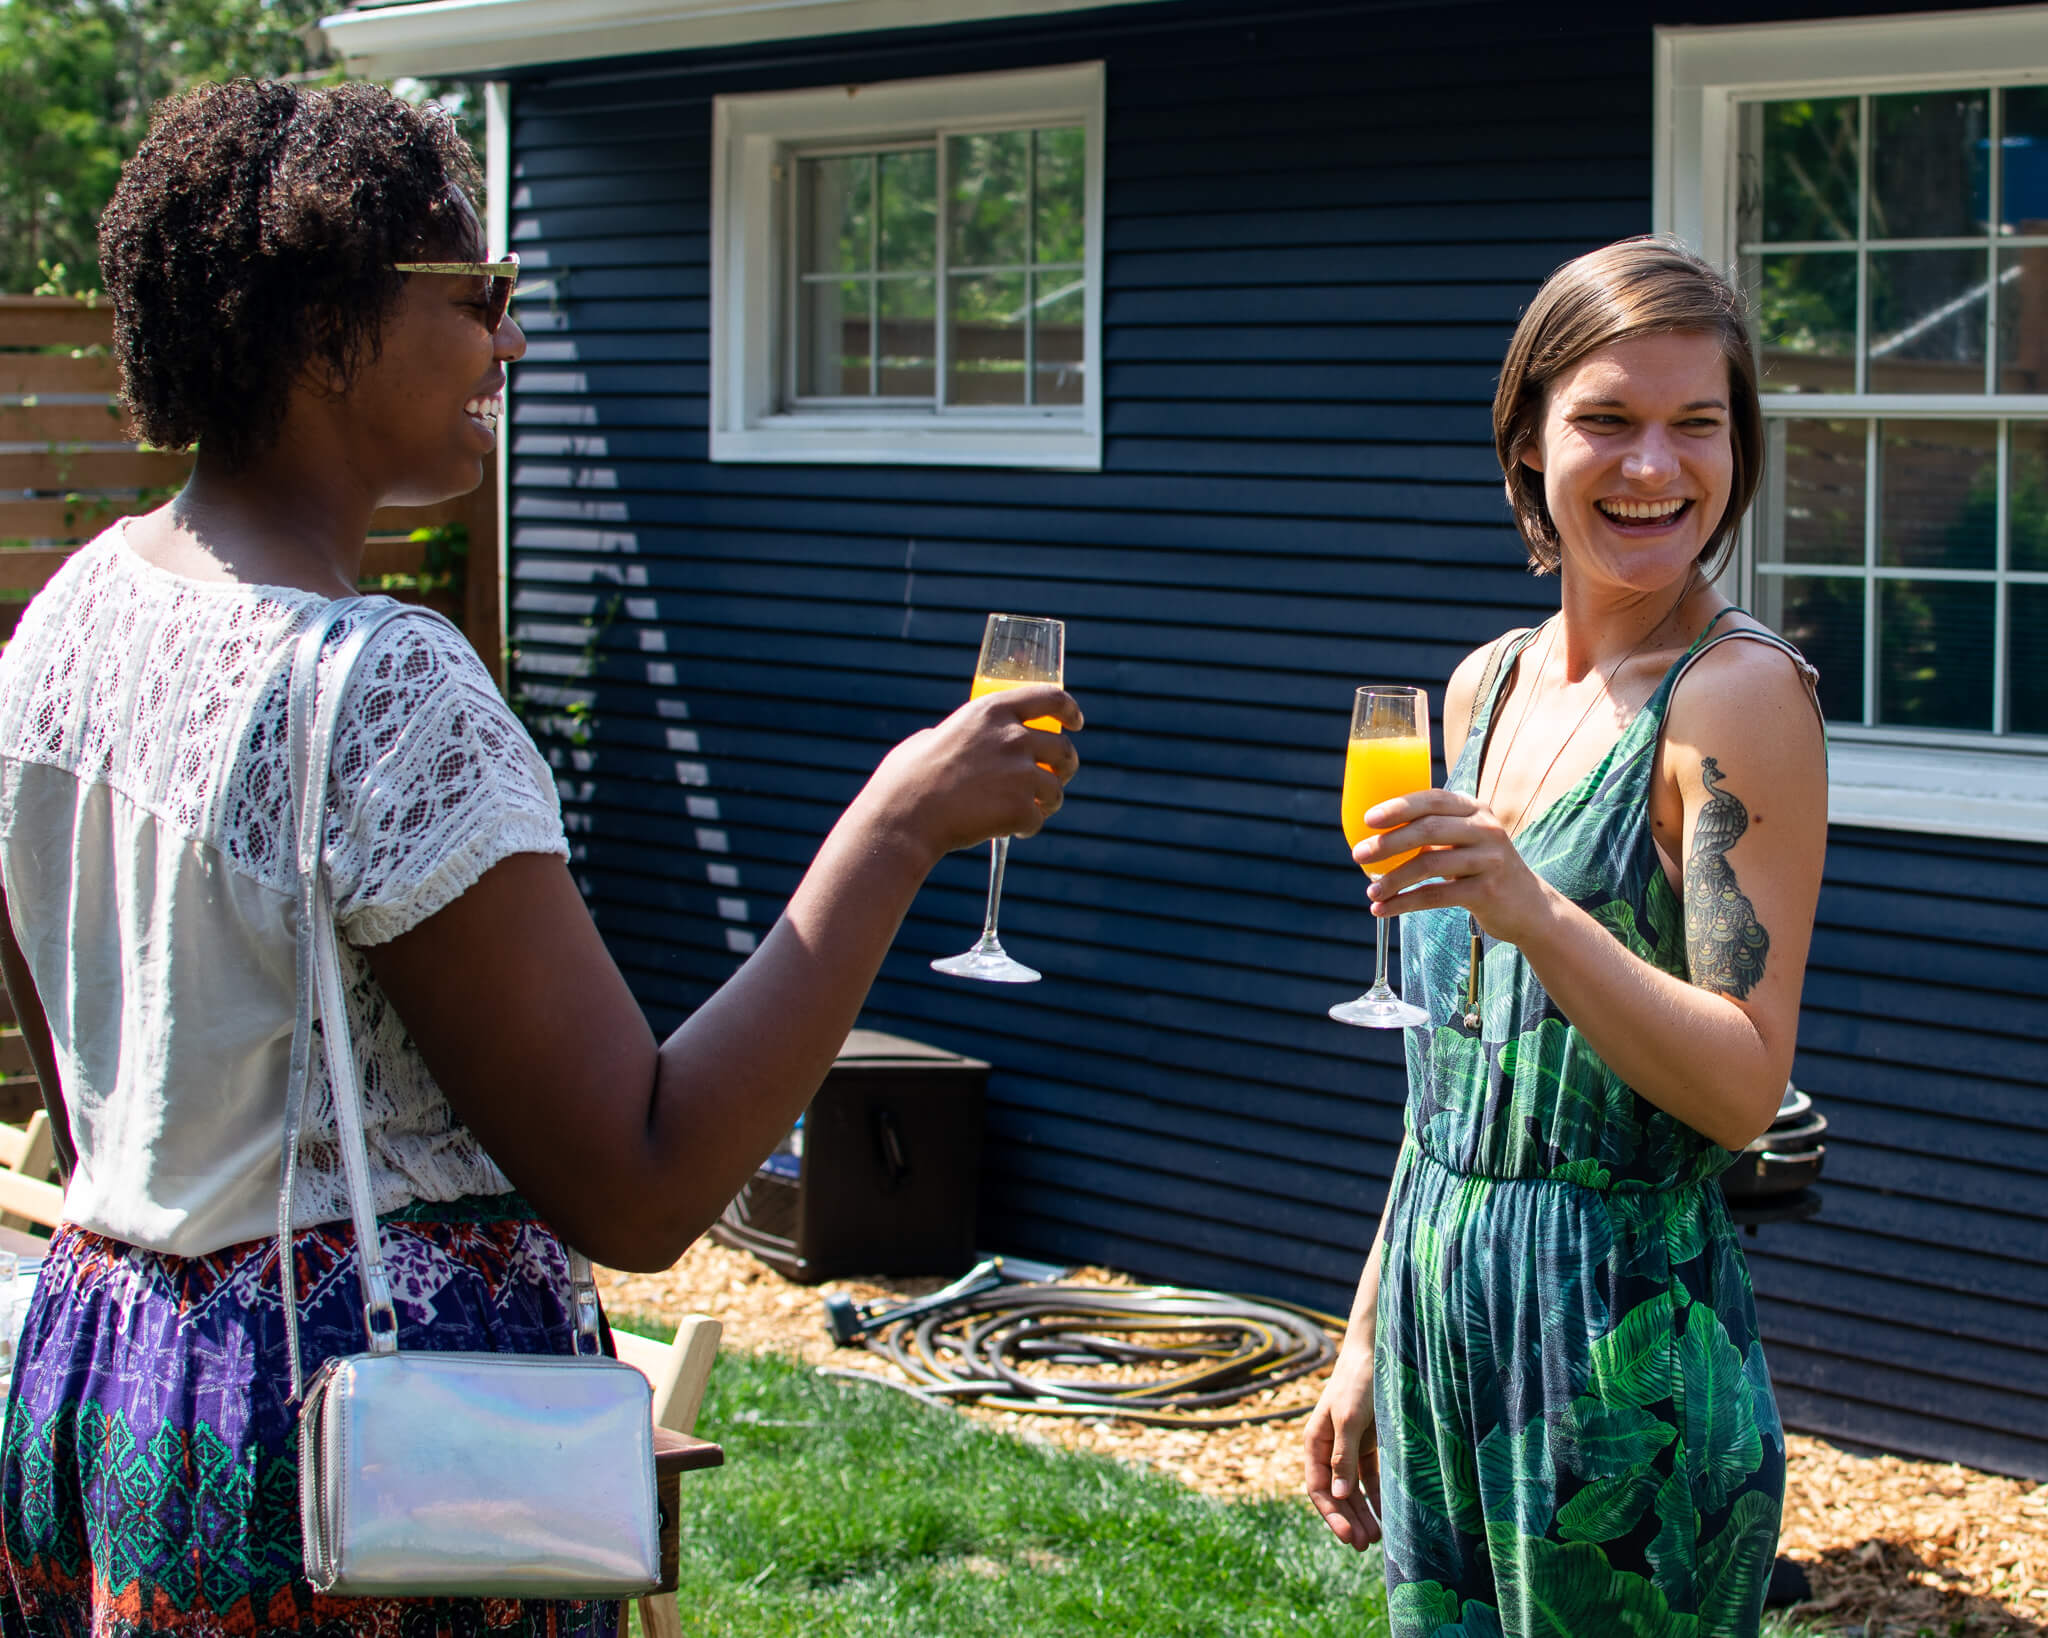 People enjoying conversation and laughing while drinking mimosas.